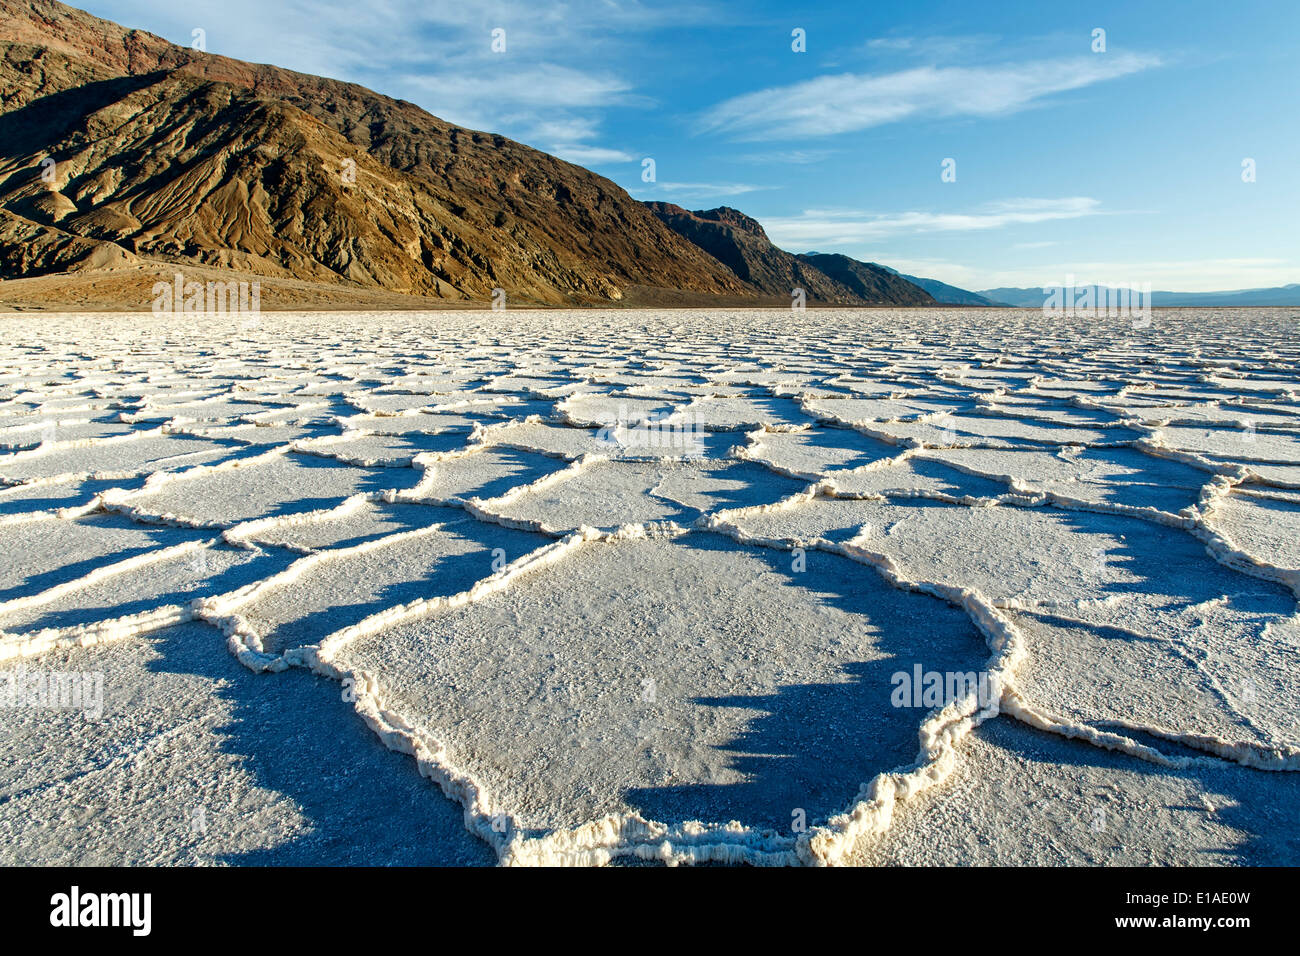 Polygonal salt pans and Black Range, Badwater Basin, Death Valley National Park, California USA - Stock Image